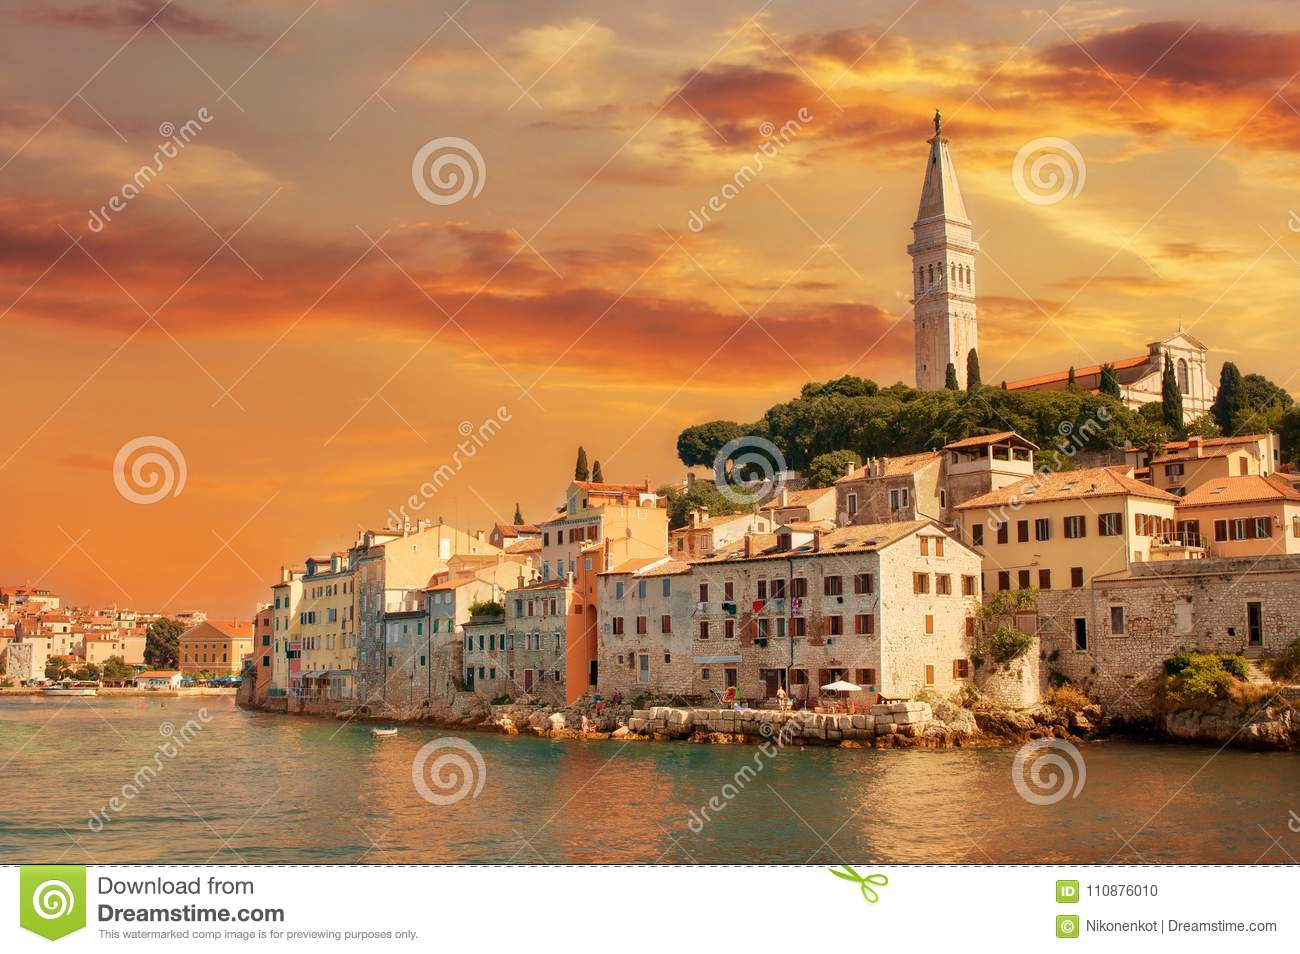 Journey through Europe, Croatia view from the sea to the City of Rovinj